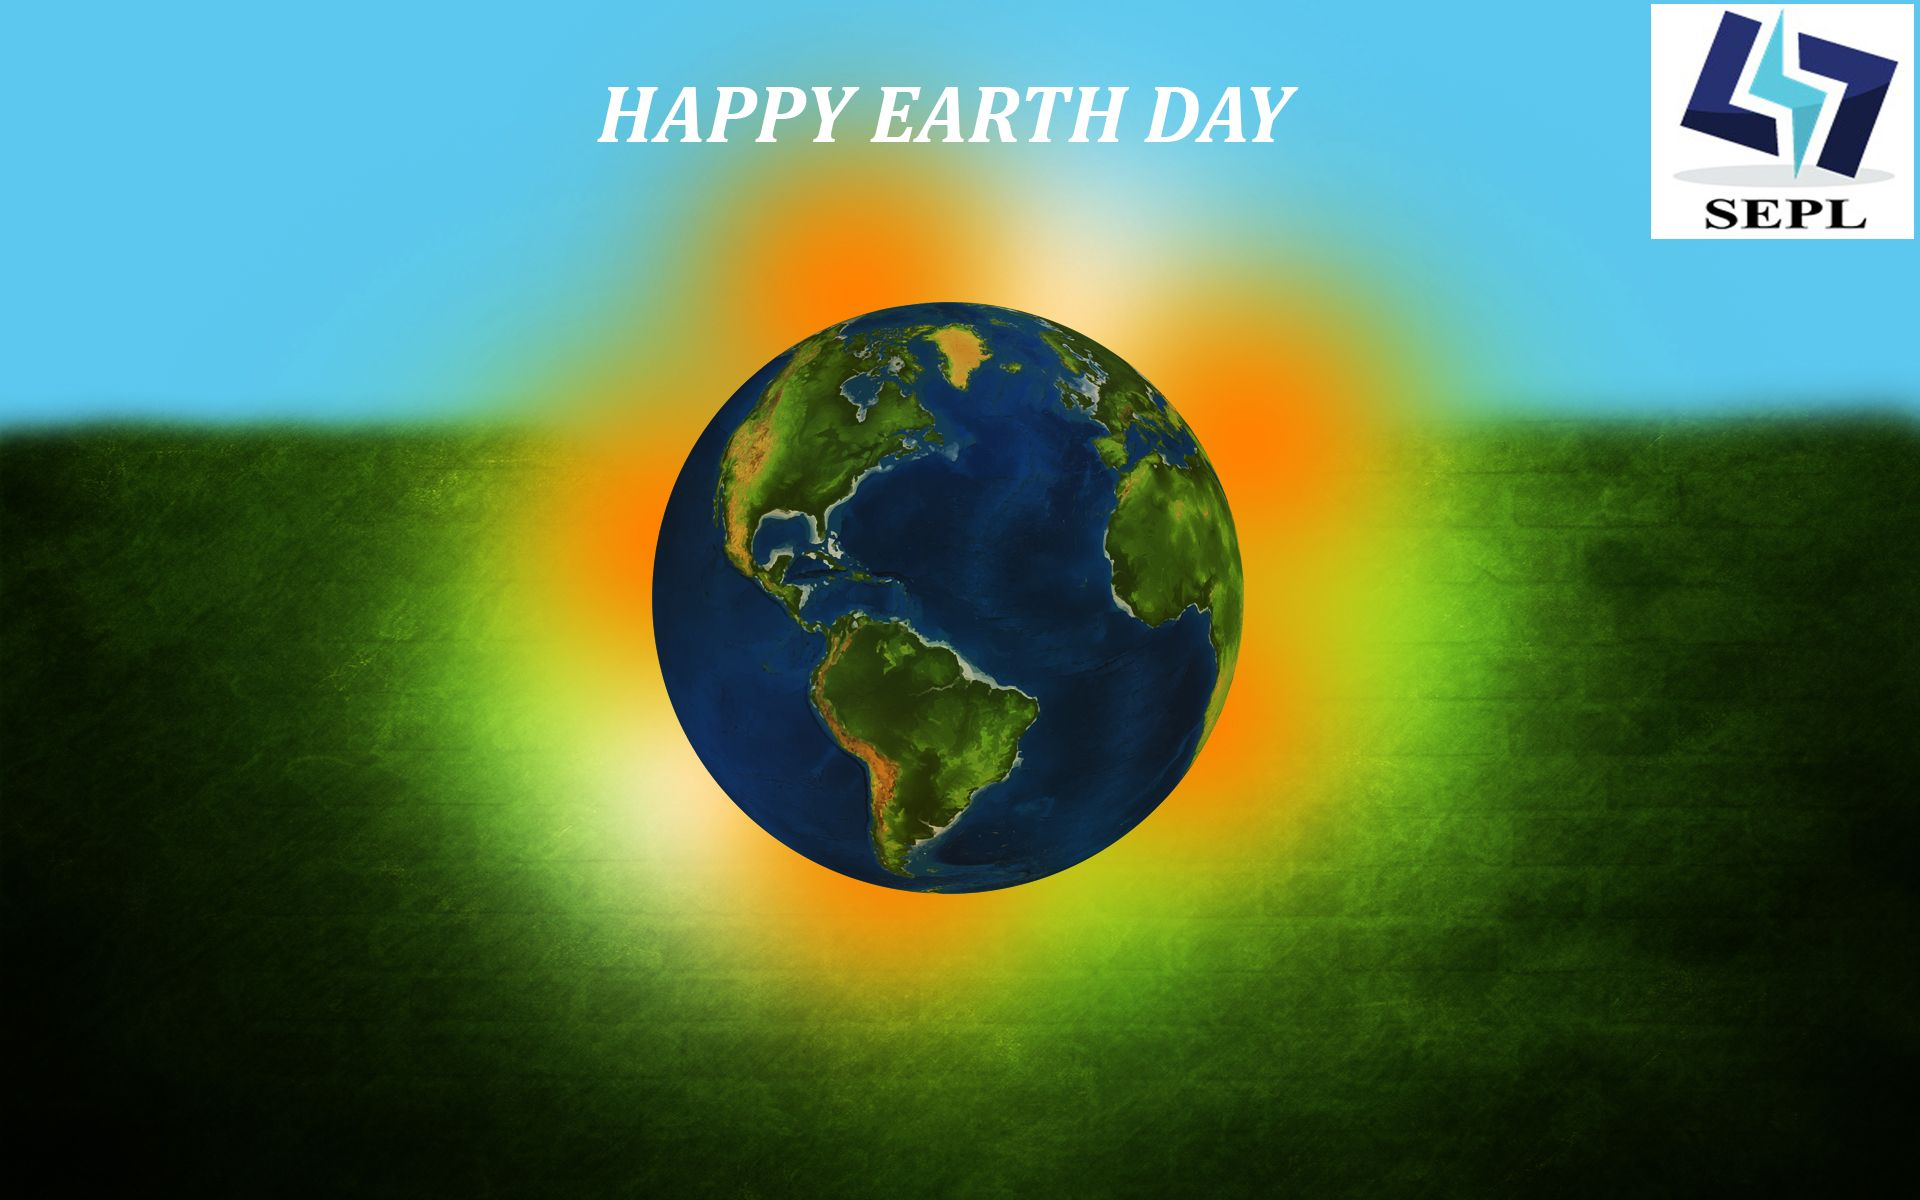 SEPL Wishes You Happy Earth Day #happyearthday #SEPL #telecomsupport